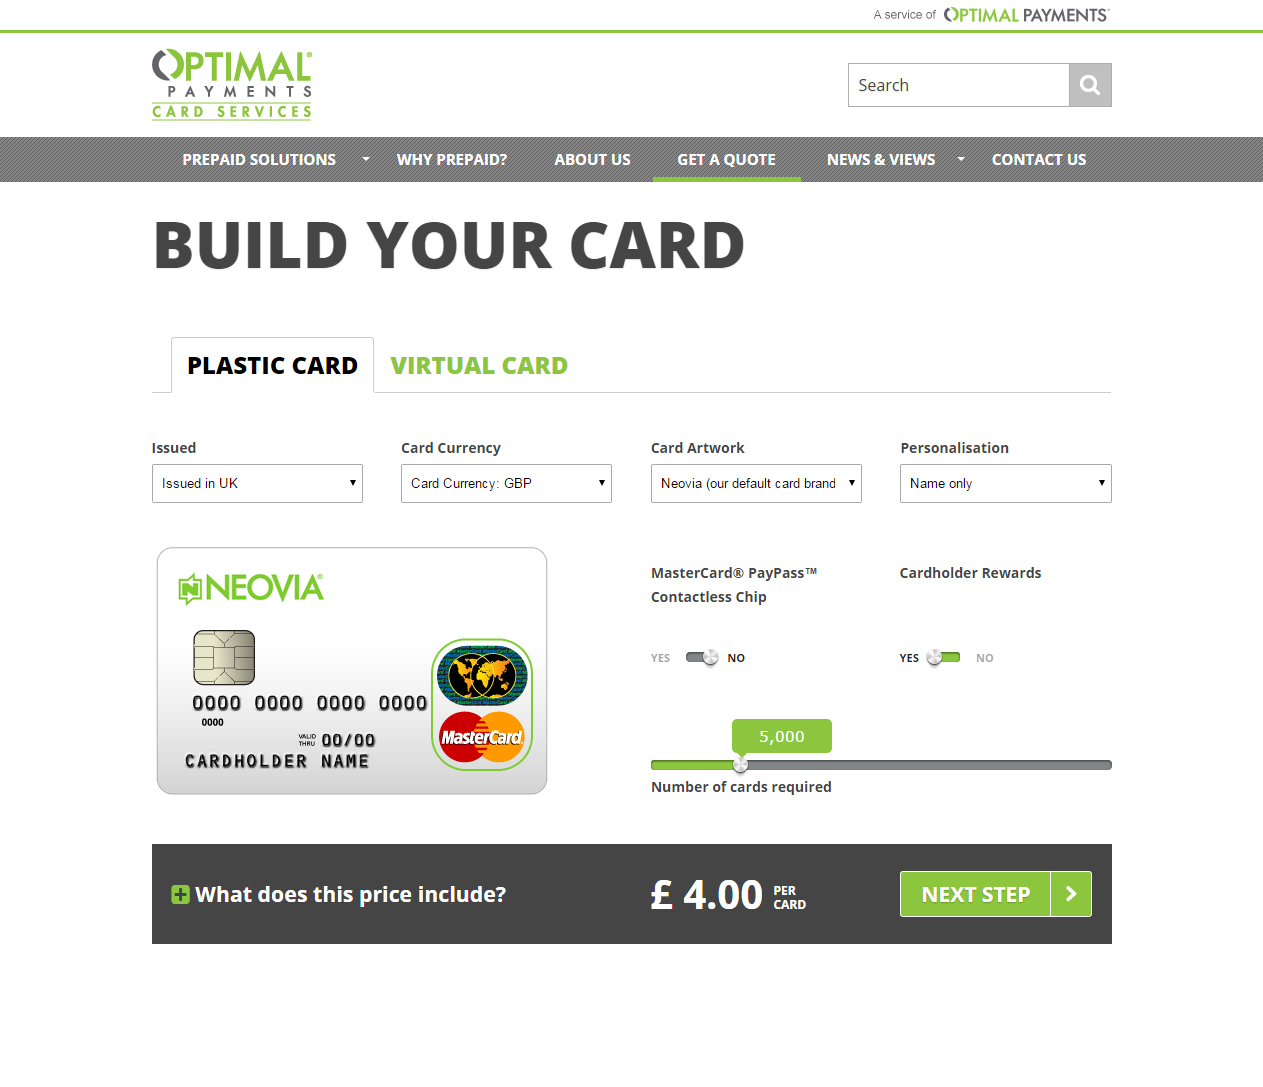 Optimal Payments Card Services website - built by Fifth Dimension